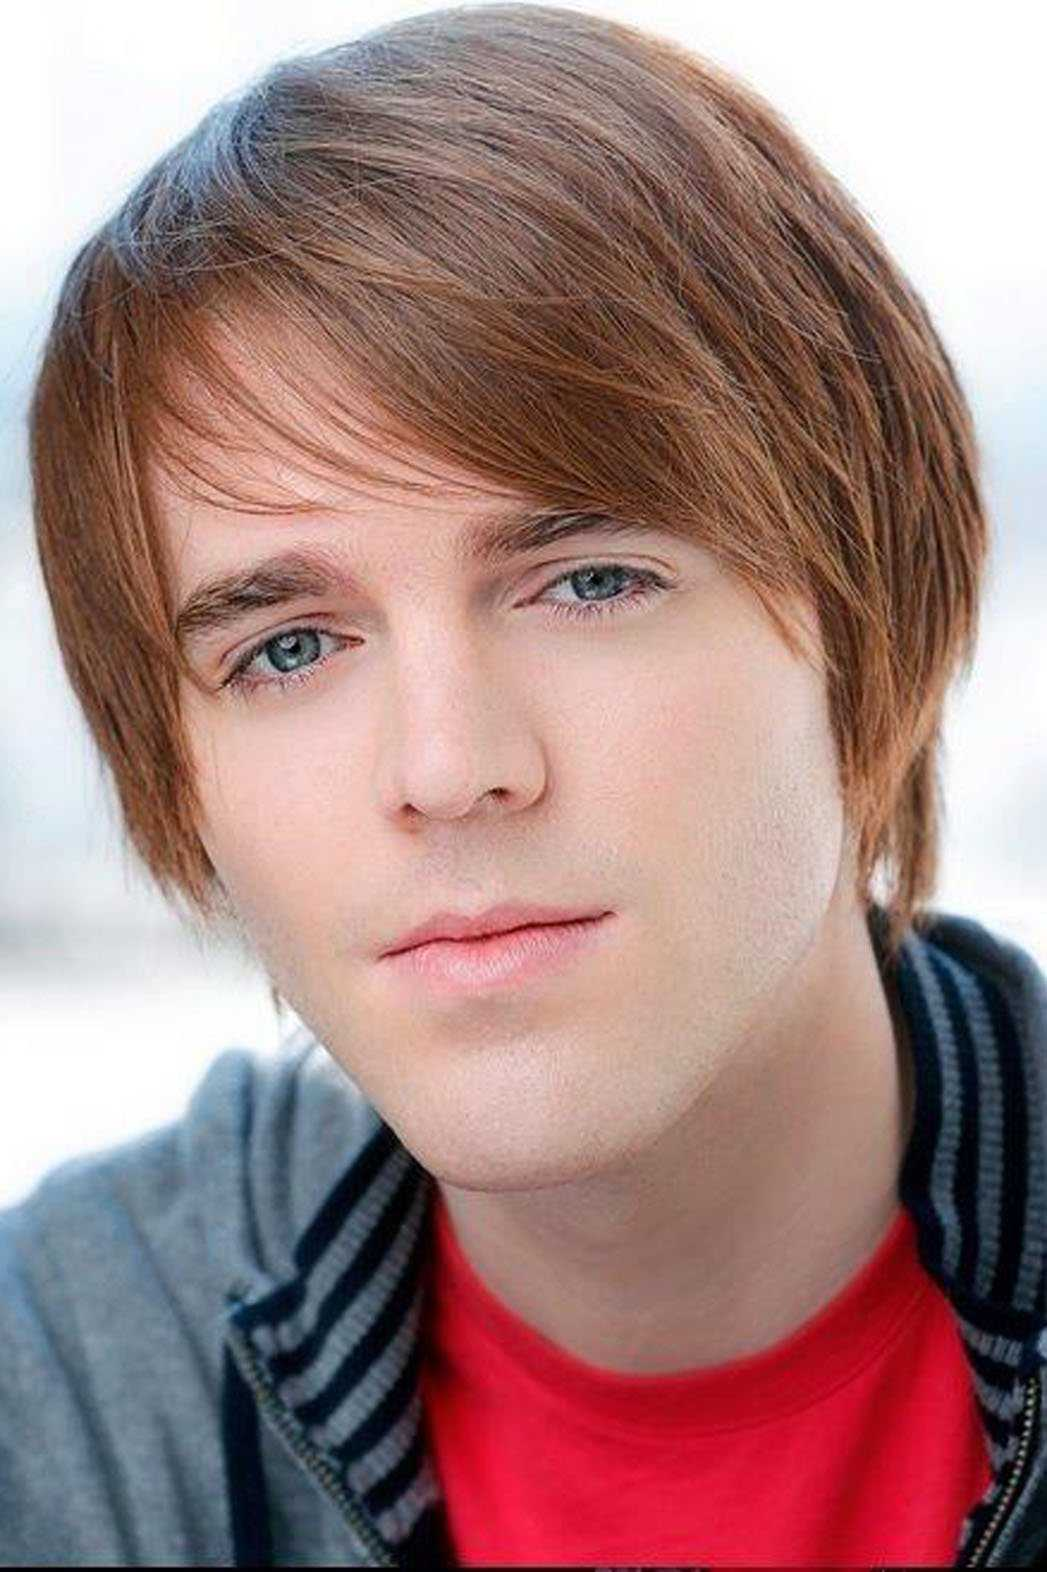 YouTuber Shane Dawson To Star In His Own Comedy For NBC